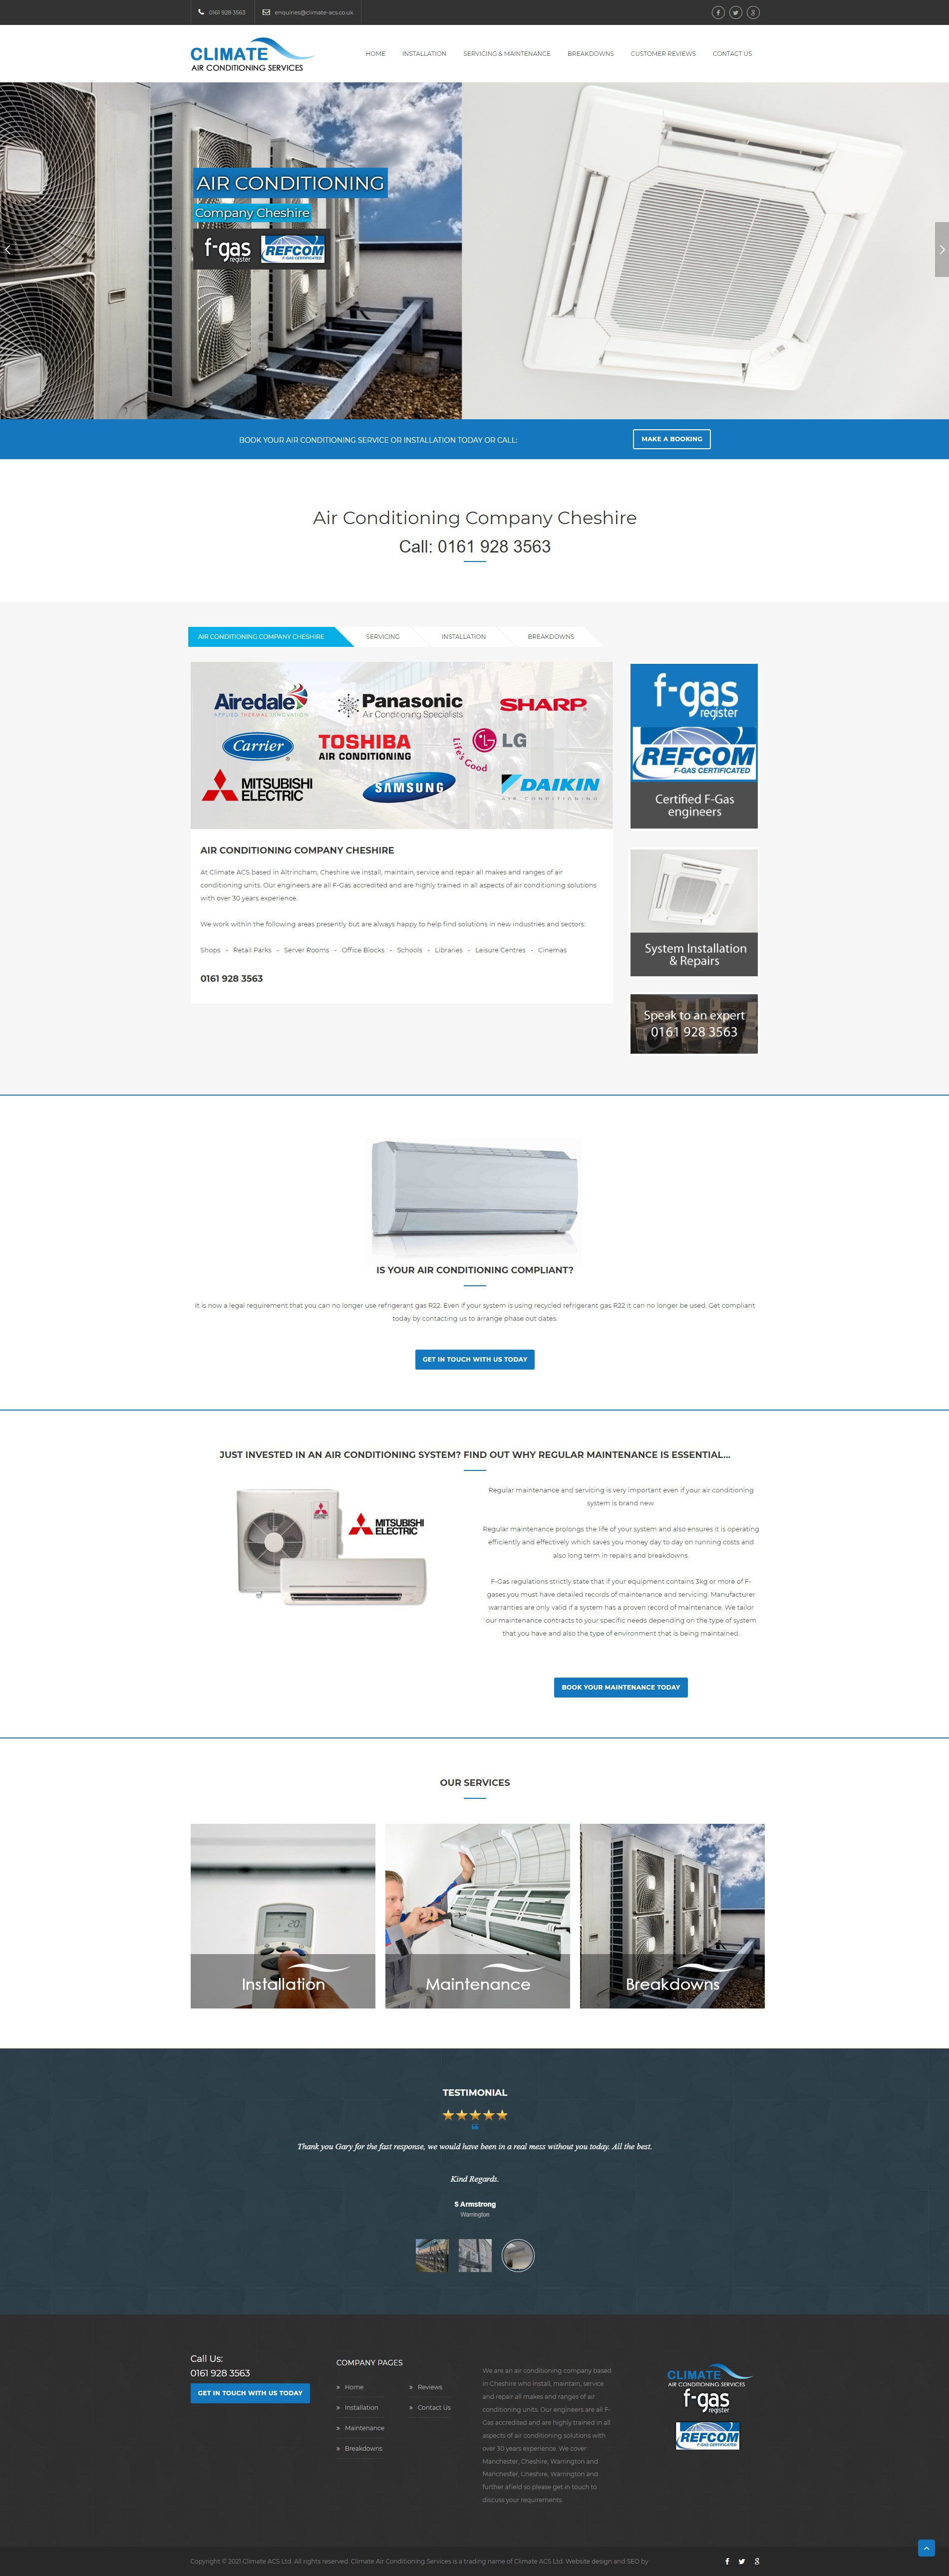 Website-Design-For-airconditioning-company